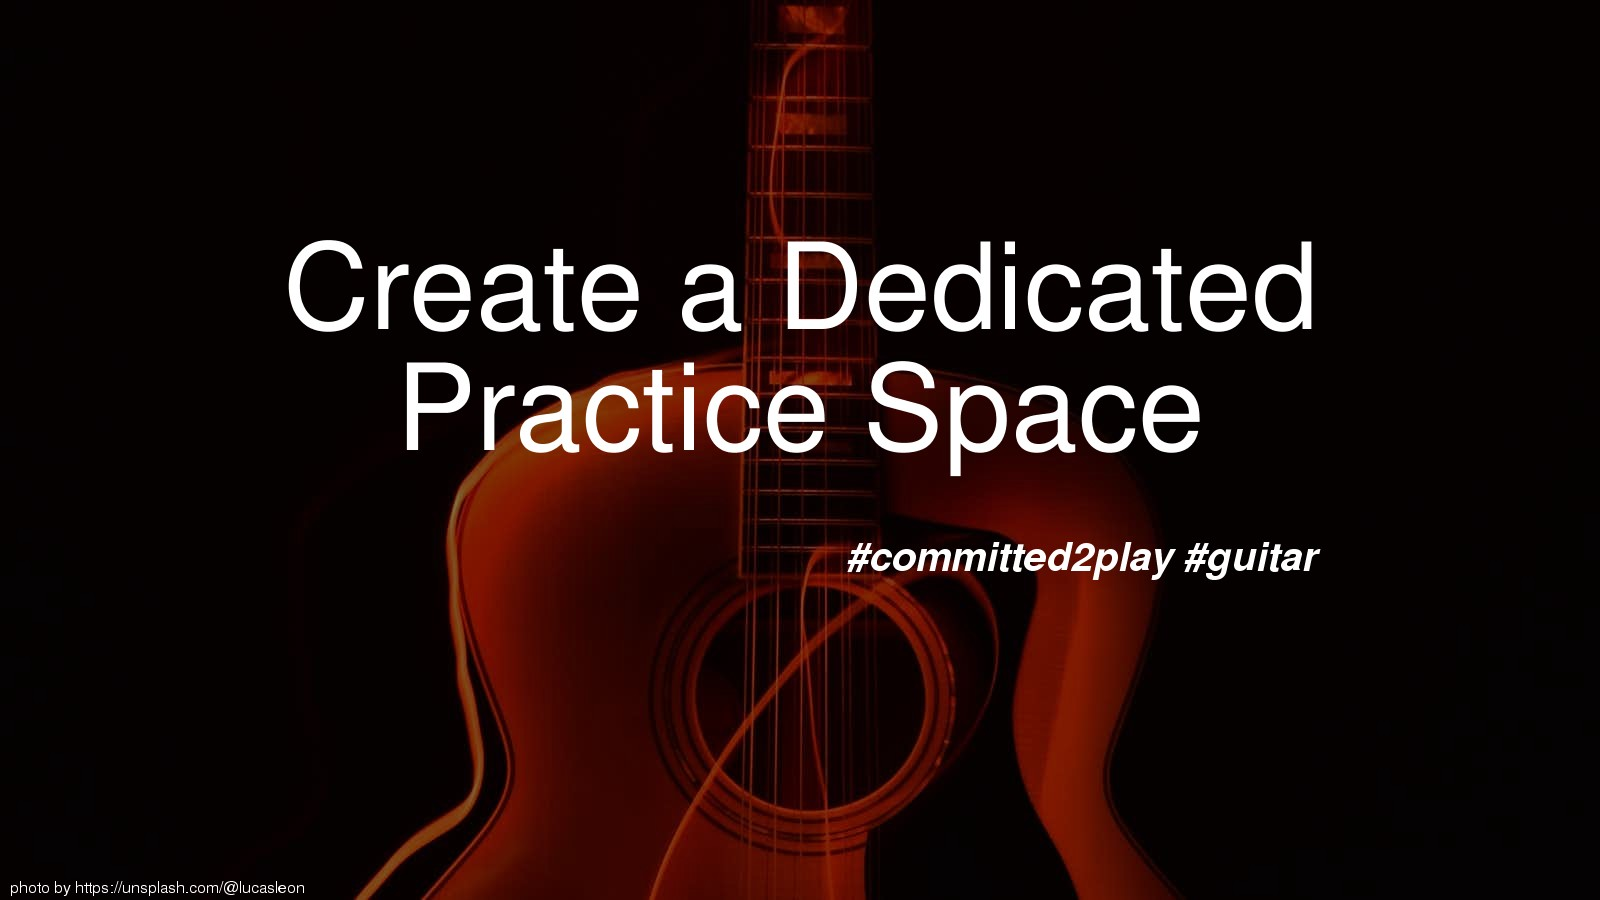 Create a Dedicated Practice Space